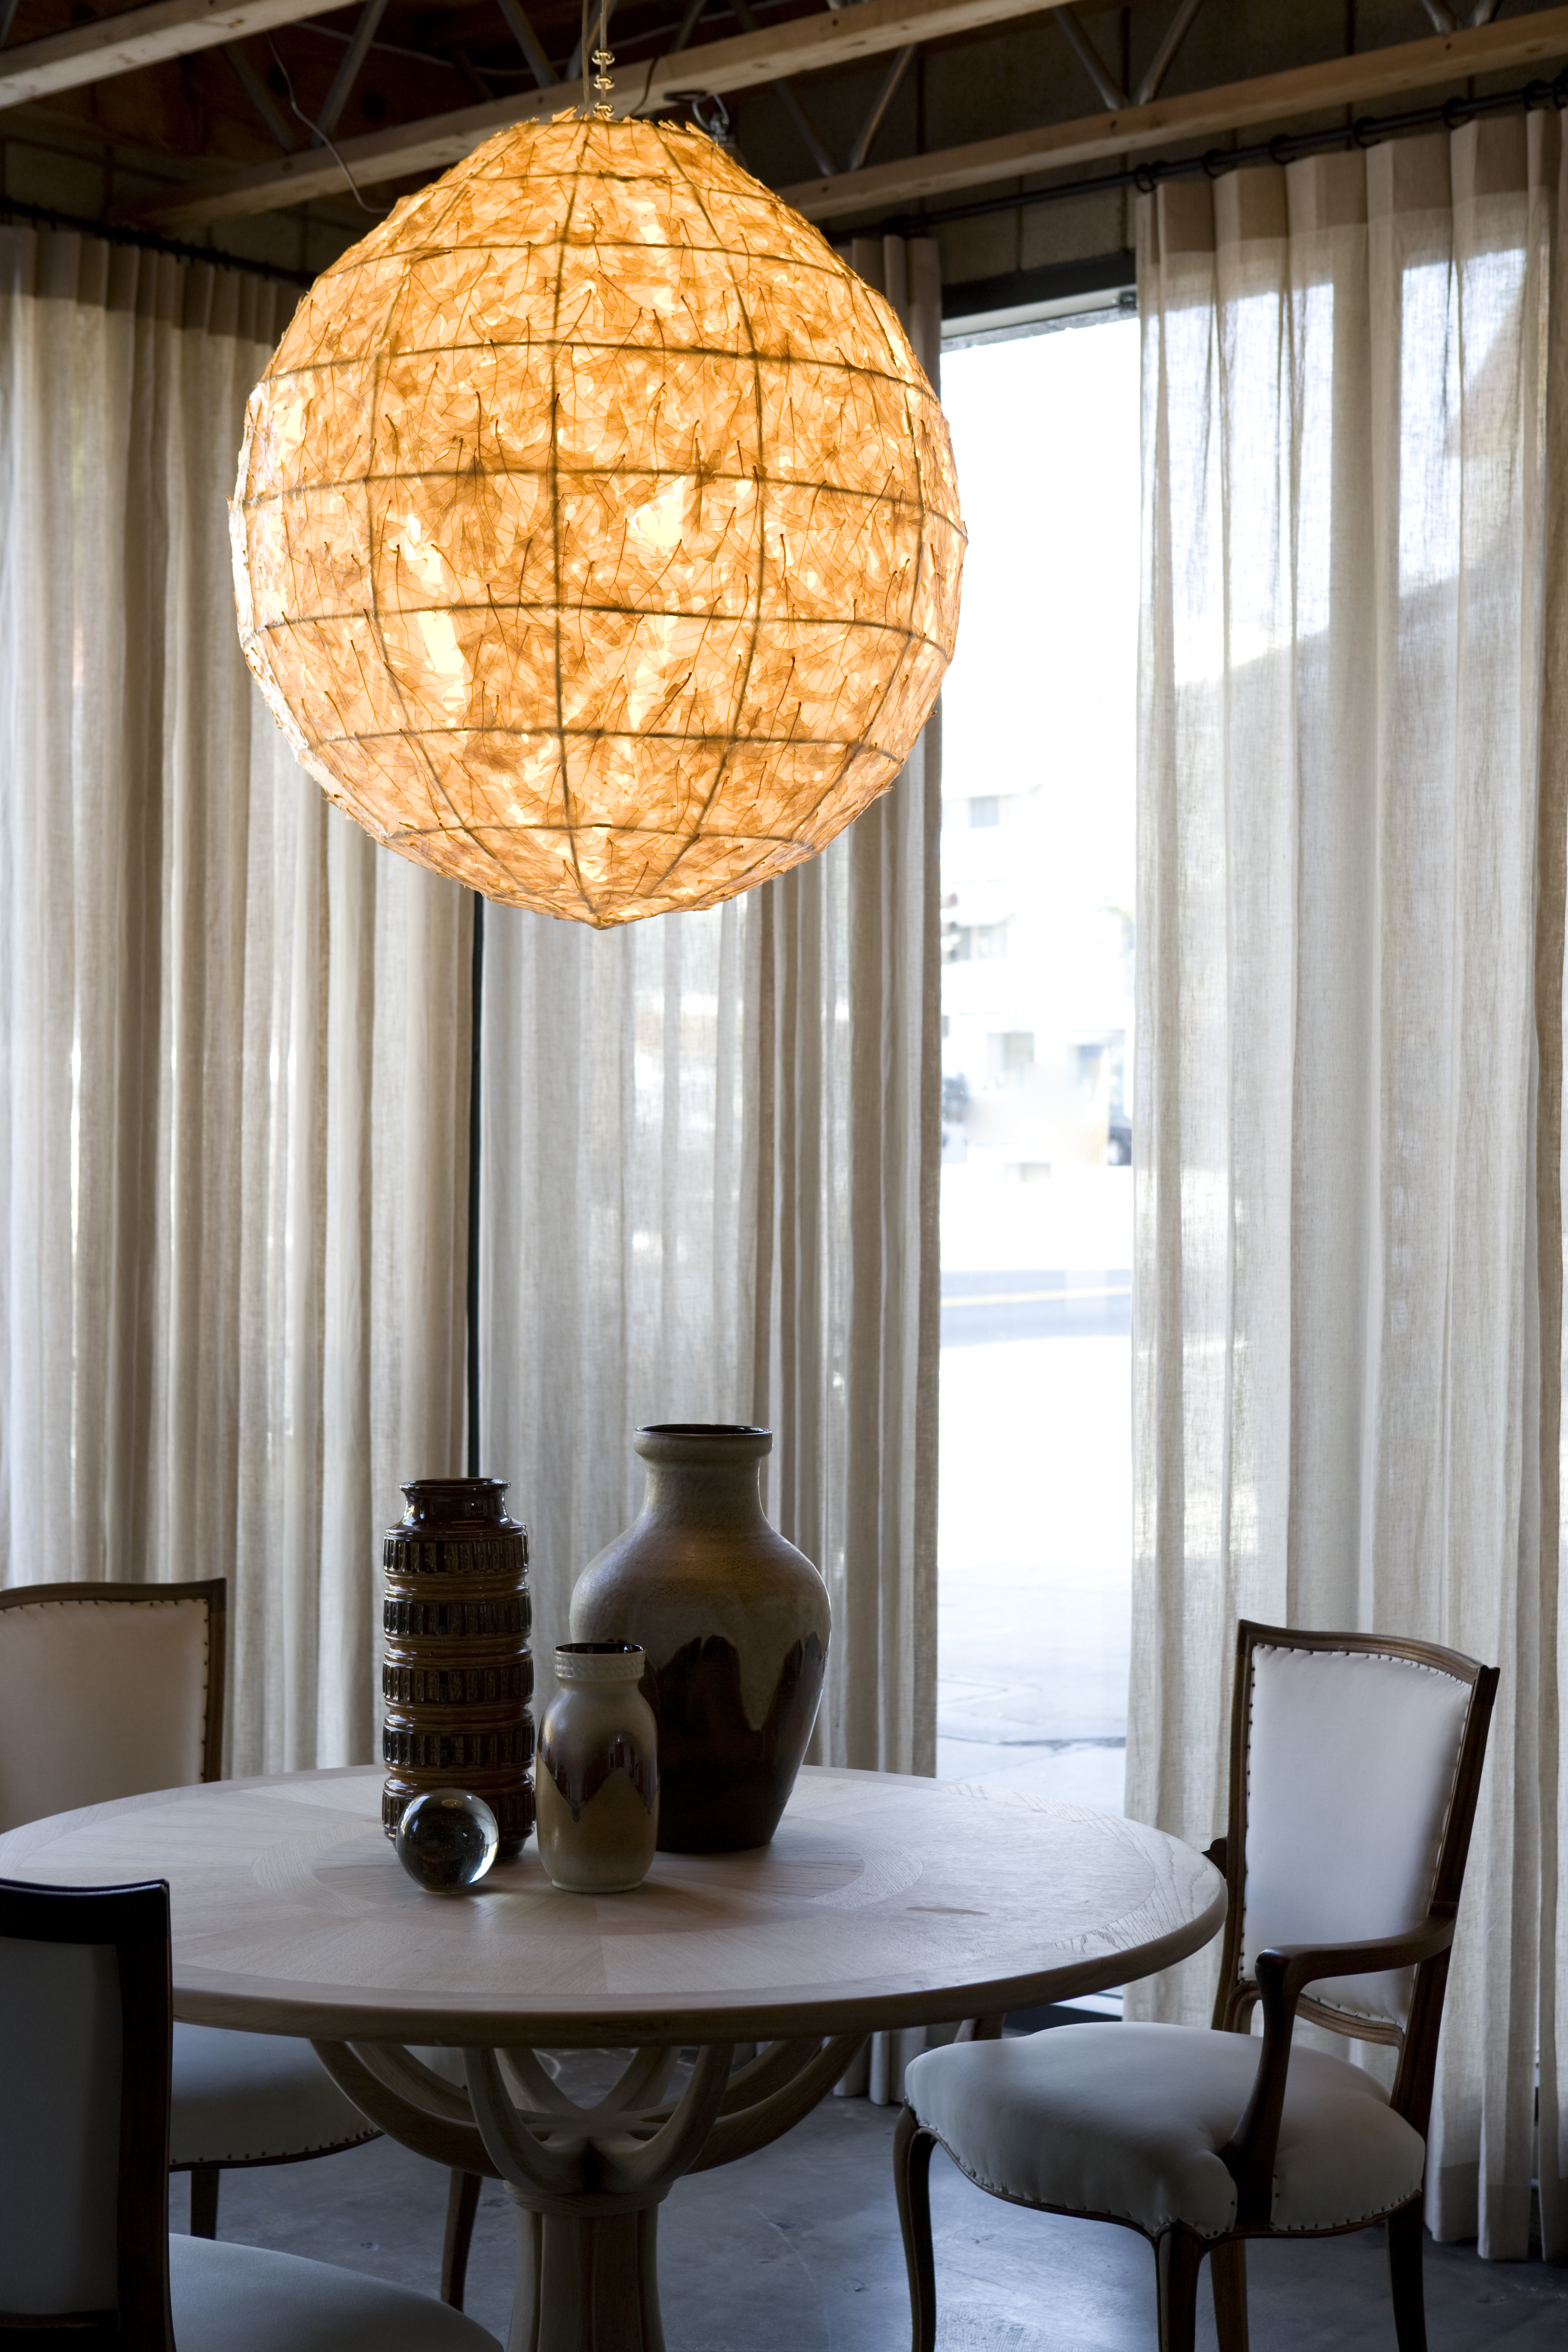 Large Swag Pendant Lamps Decor (View 13 of 13)